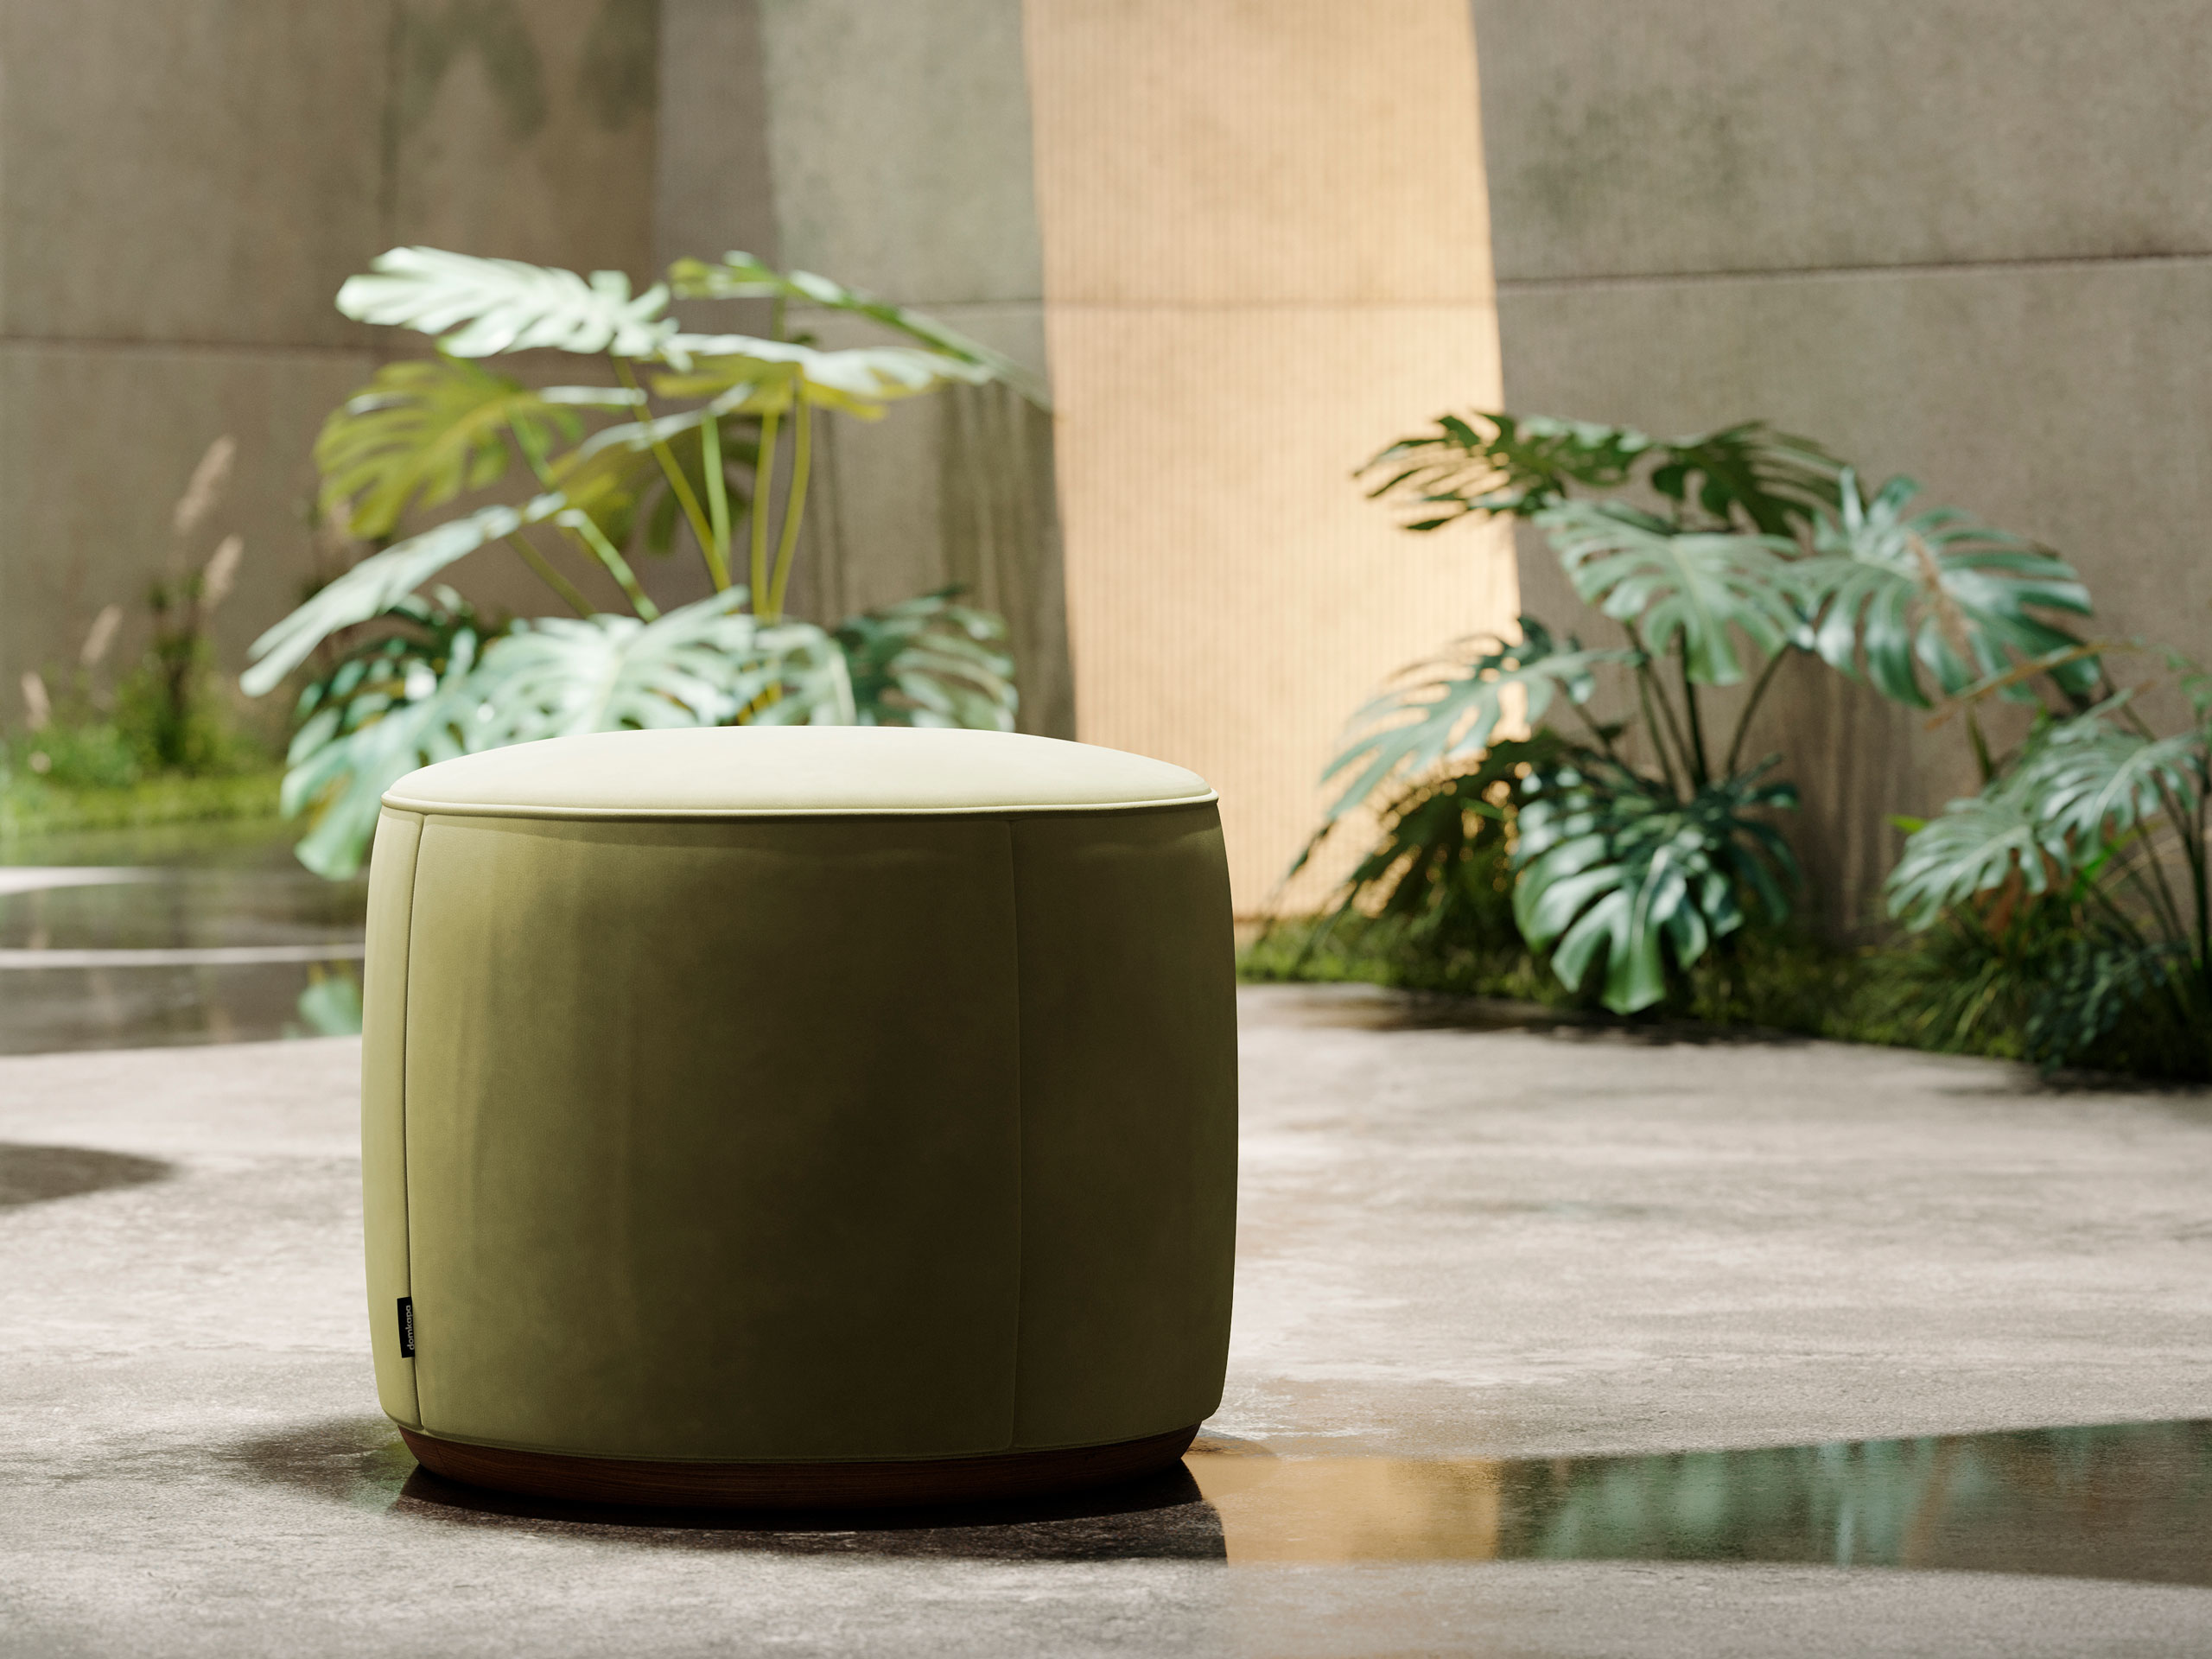 rachel-pouf-new-collection-domkapa-2021-3